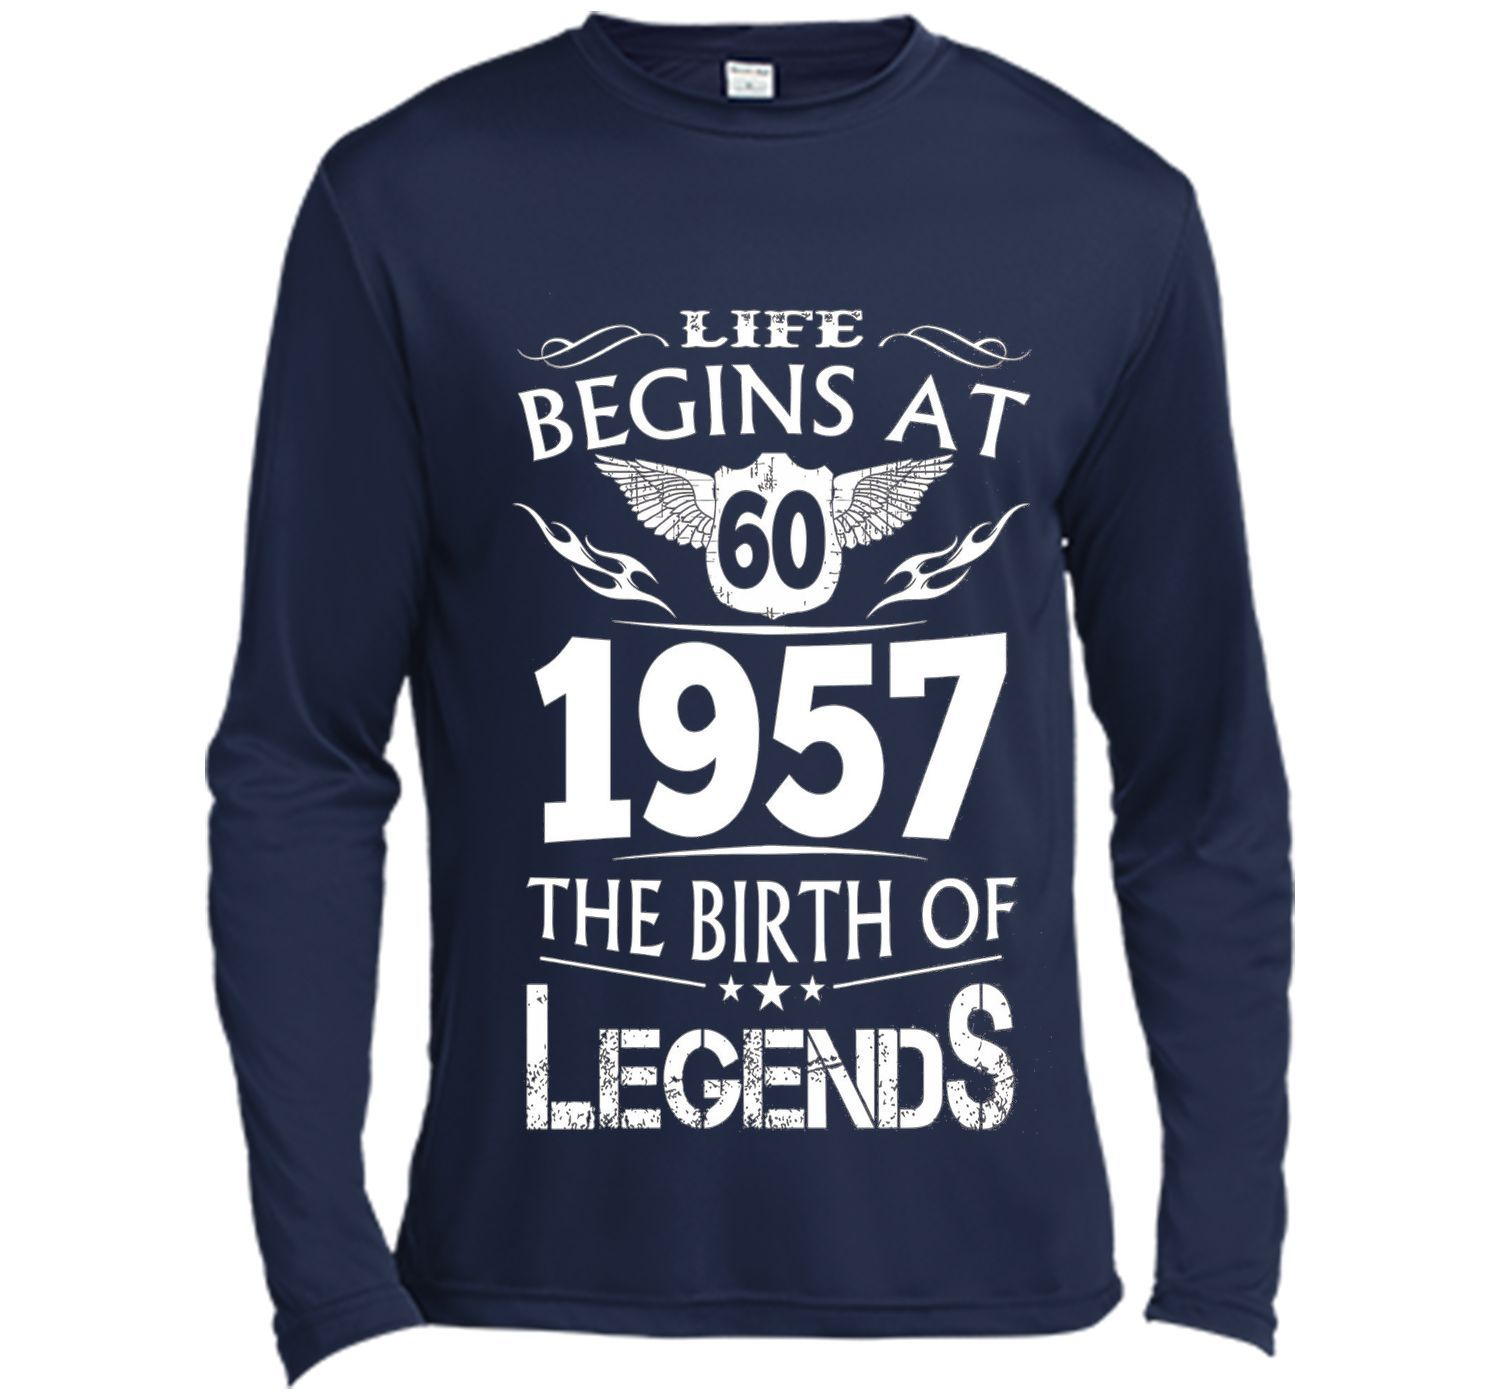 0d239e4aa Life Begins At 60 1957 The Birth Of Legends T-Shirt t-shirt ...